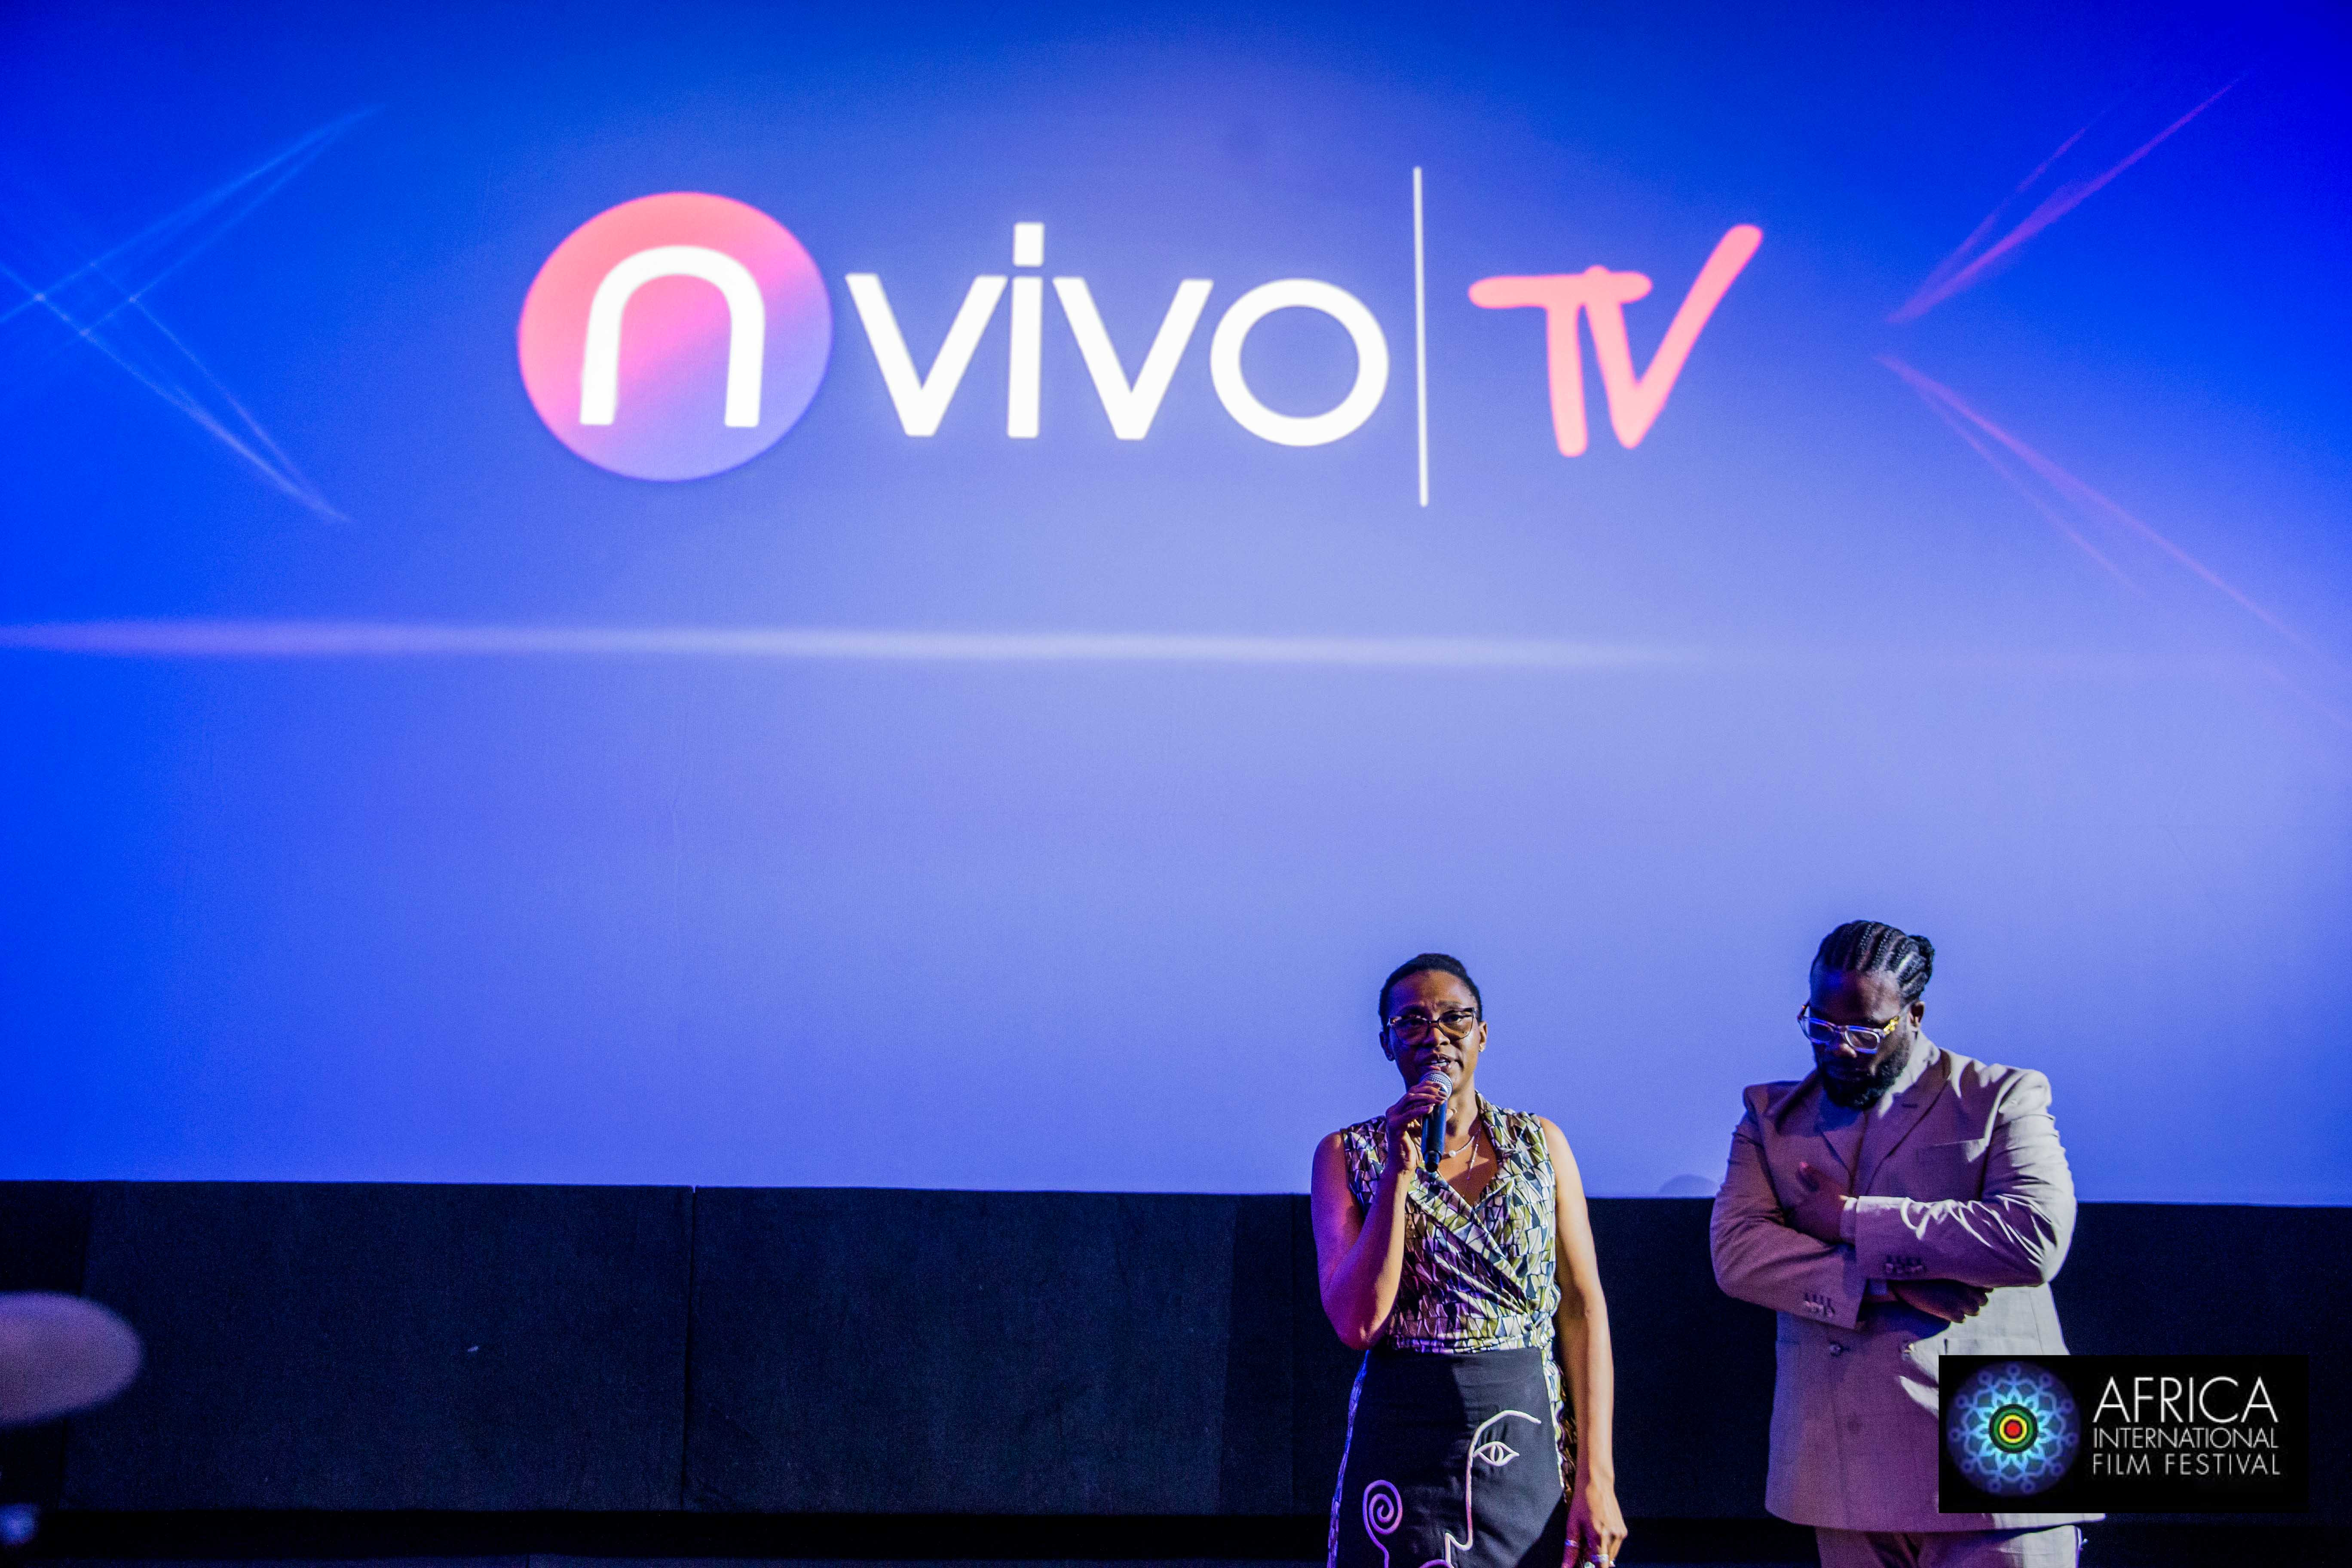 Envivo Communications launches nvivo tv - a video on demand platform where you can watch your favourite shows for free!